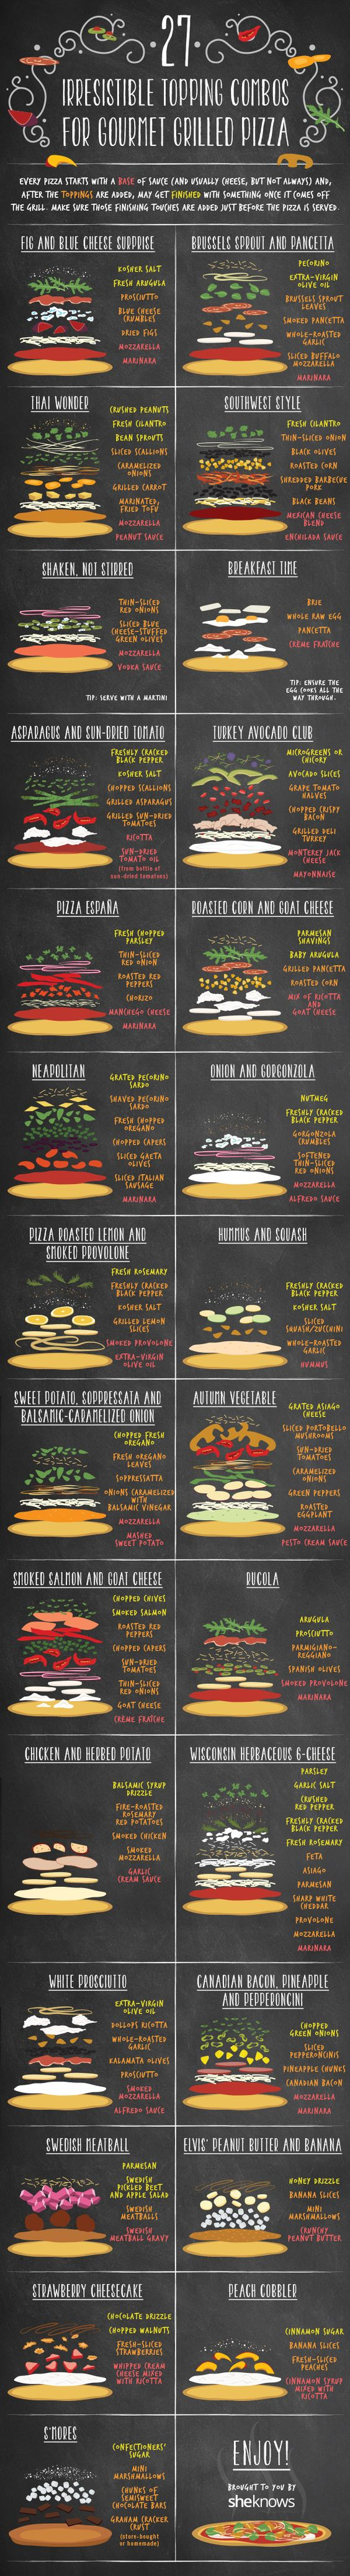 Pizza ideas